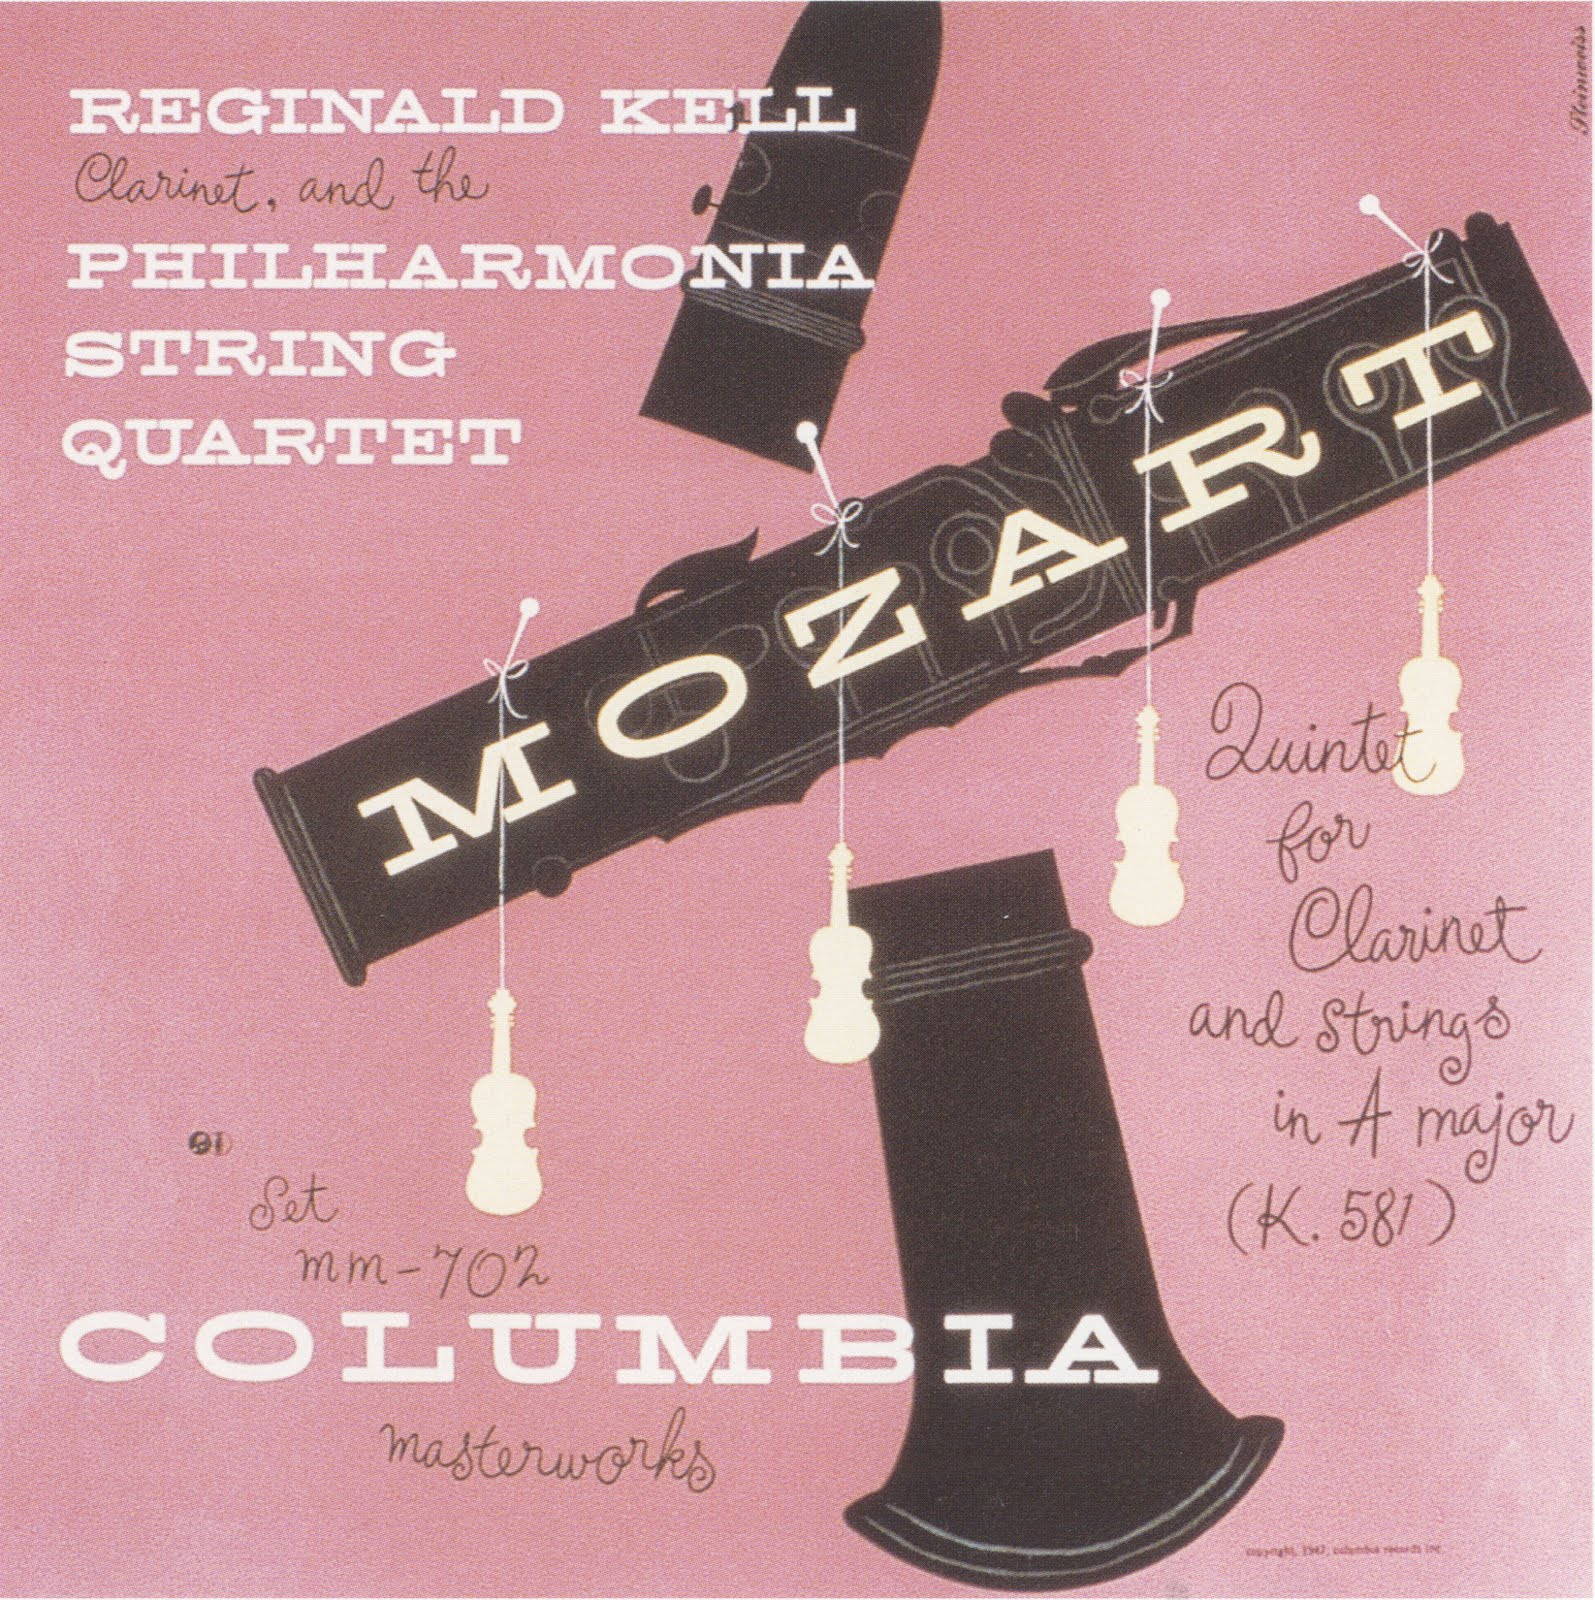 Alex Steinweiss,  Mozart: Quintet for Clarinet and Strings in A Majo r, record jacket design, Columbia Records, 1947